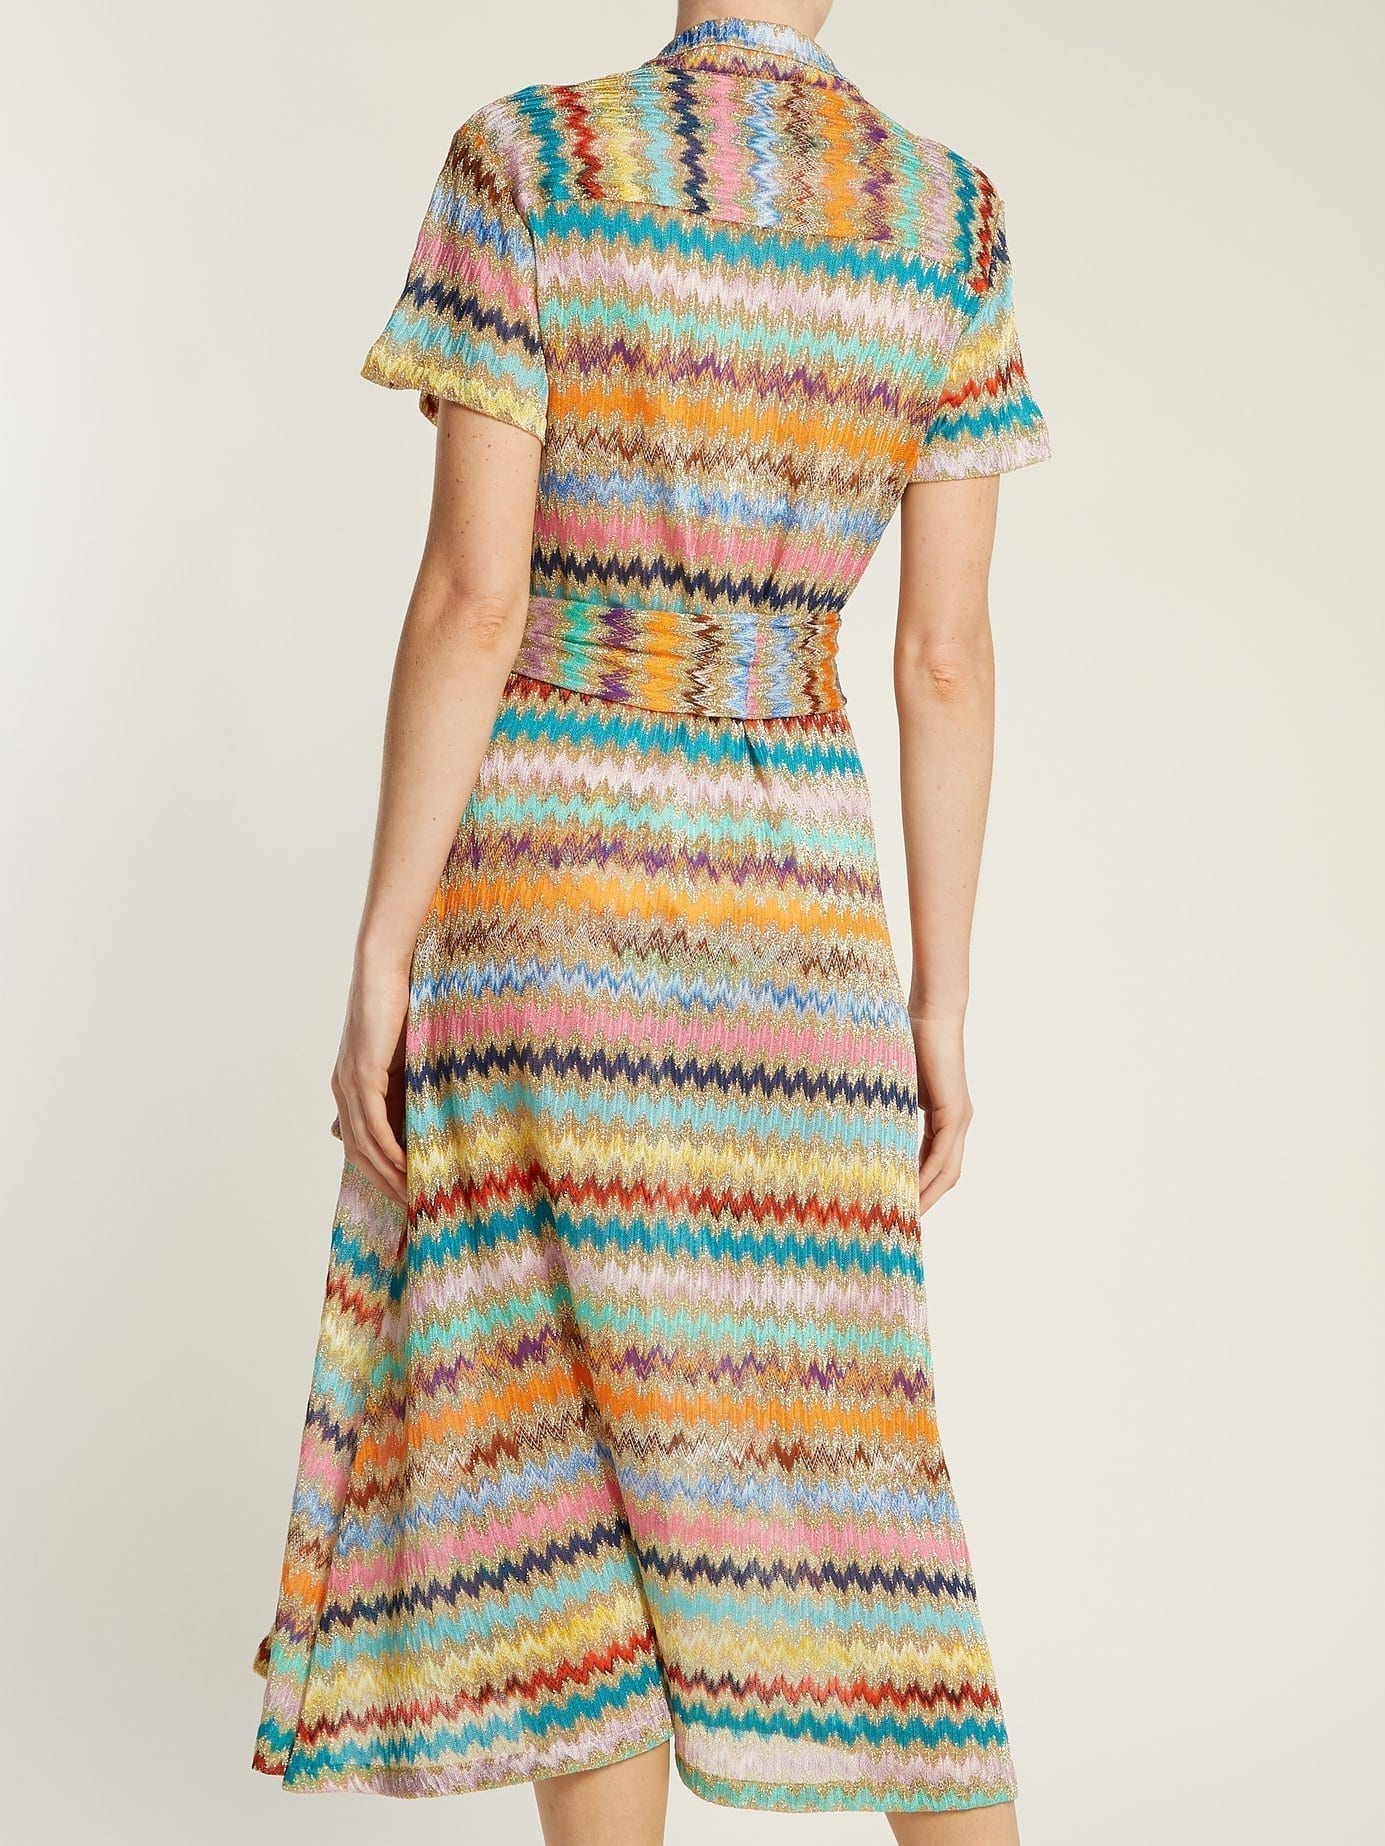 MISSONI MARE Zigzag Knitted Gold Shirtdress - We Select Dresses